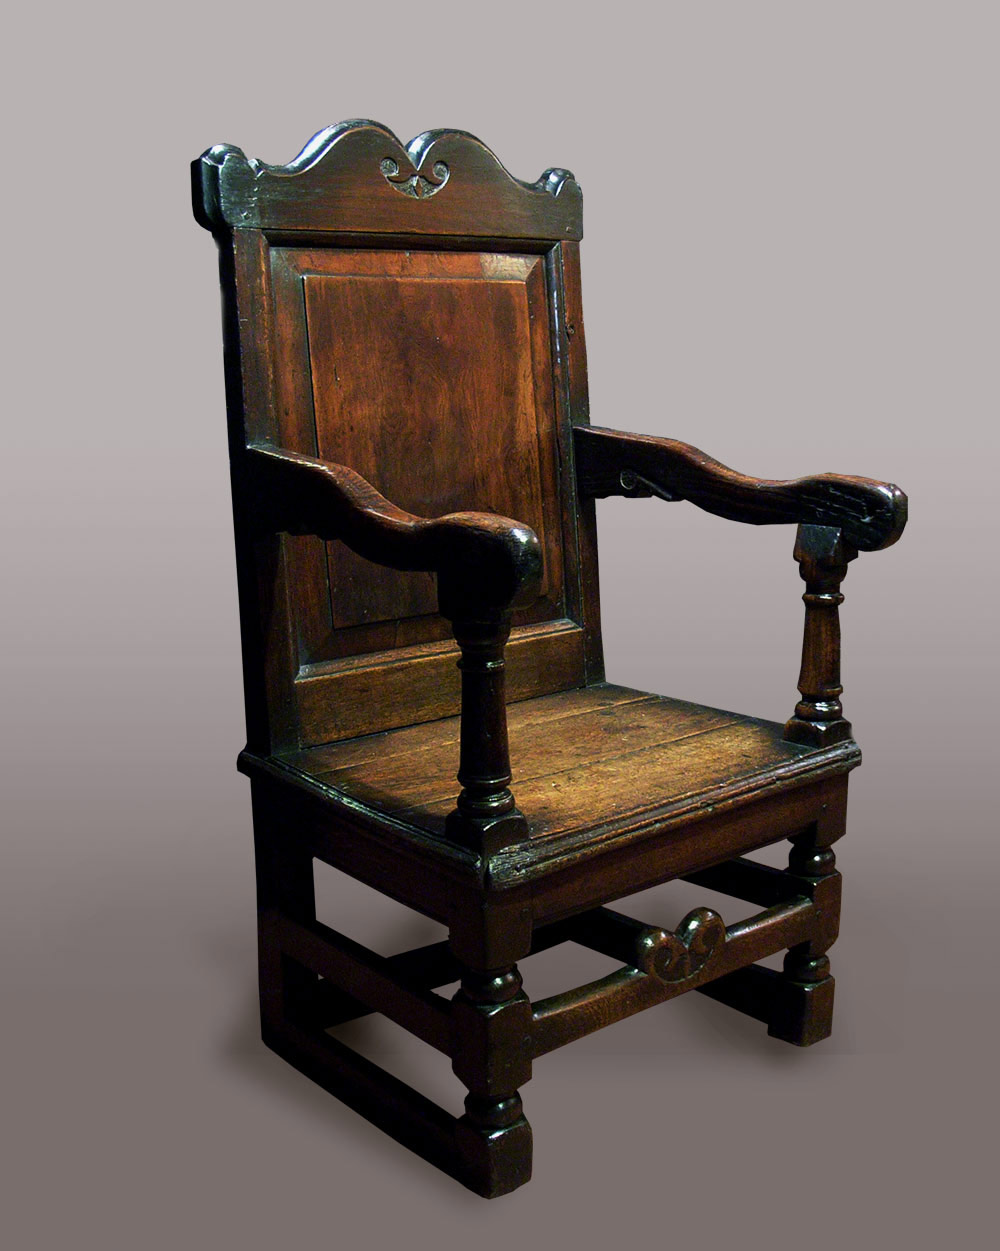 mahogany chair contact antique chairs william armchair after corner product us before sold blog iv